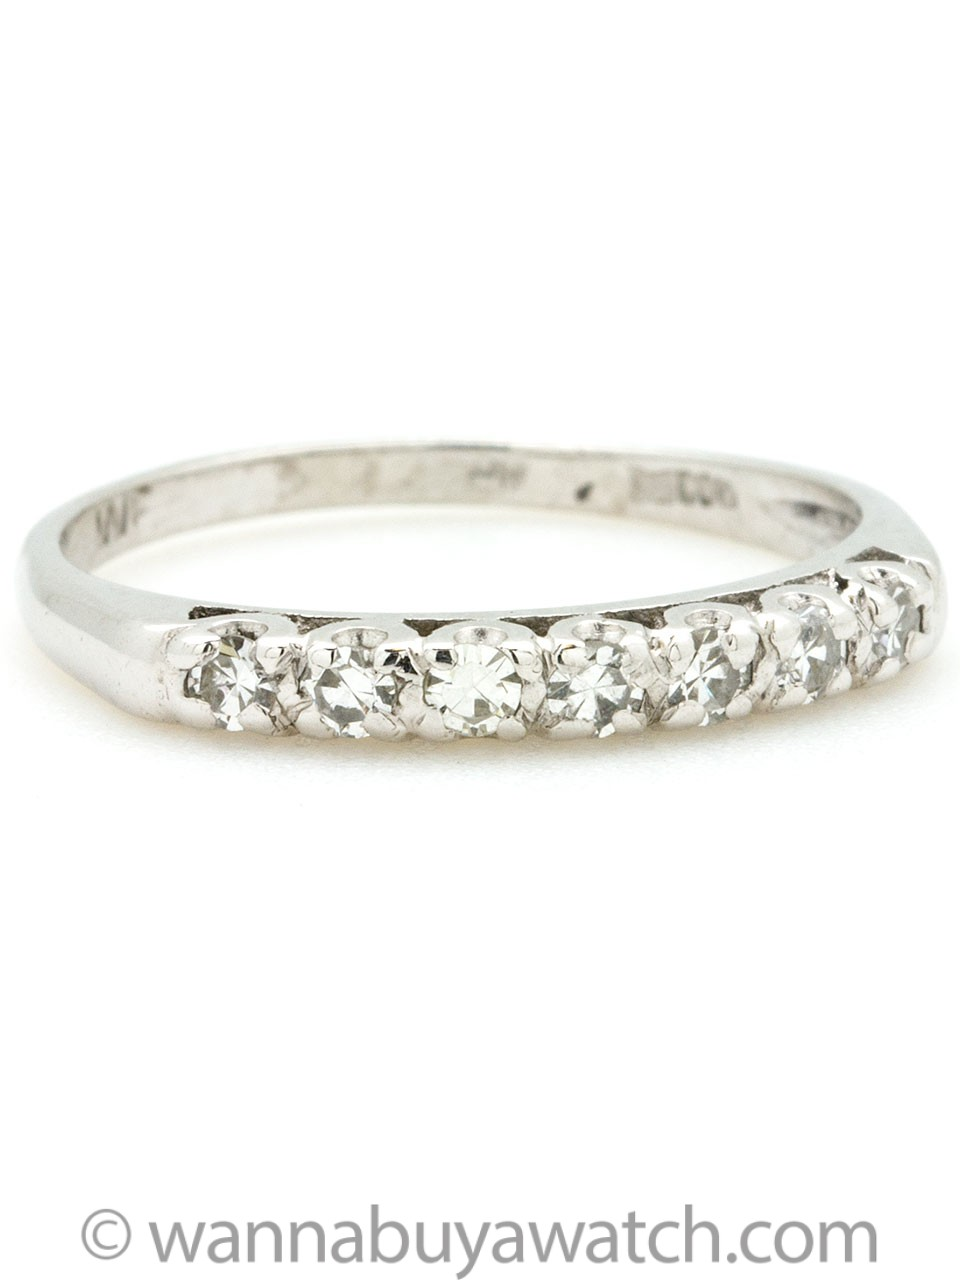 1950s White Gold and Round Brilliant Cut Diamond Ring